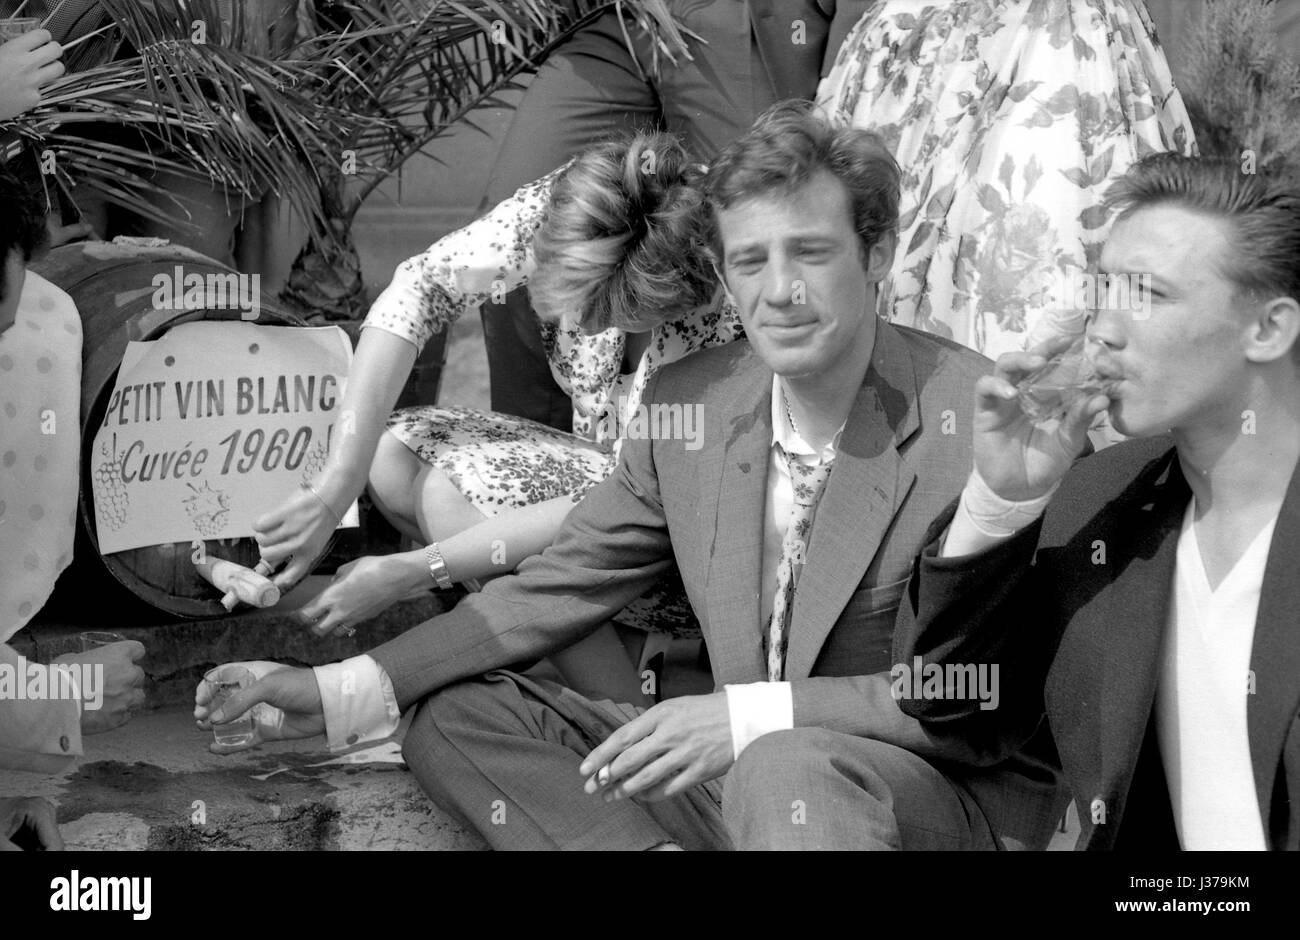 Jean-Paul Belmondo hopes that he will again be invited to appear 09.04.2015 1